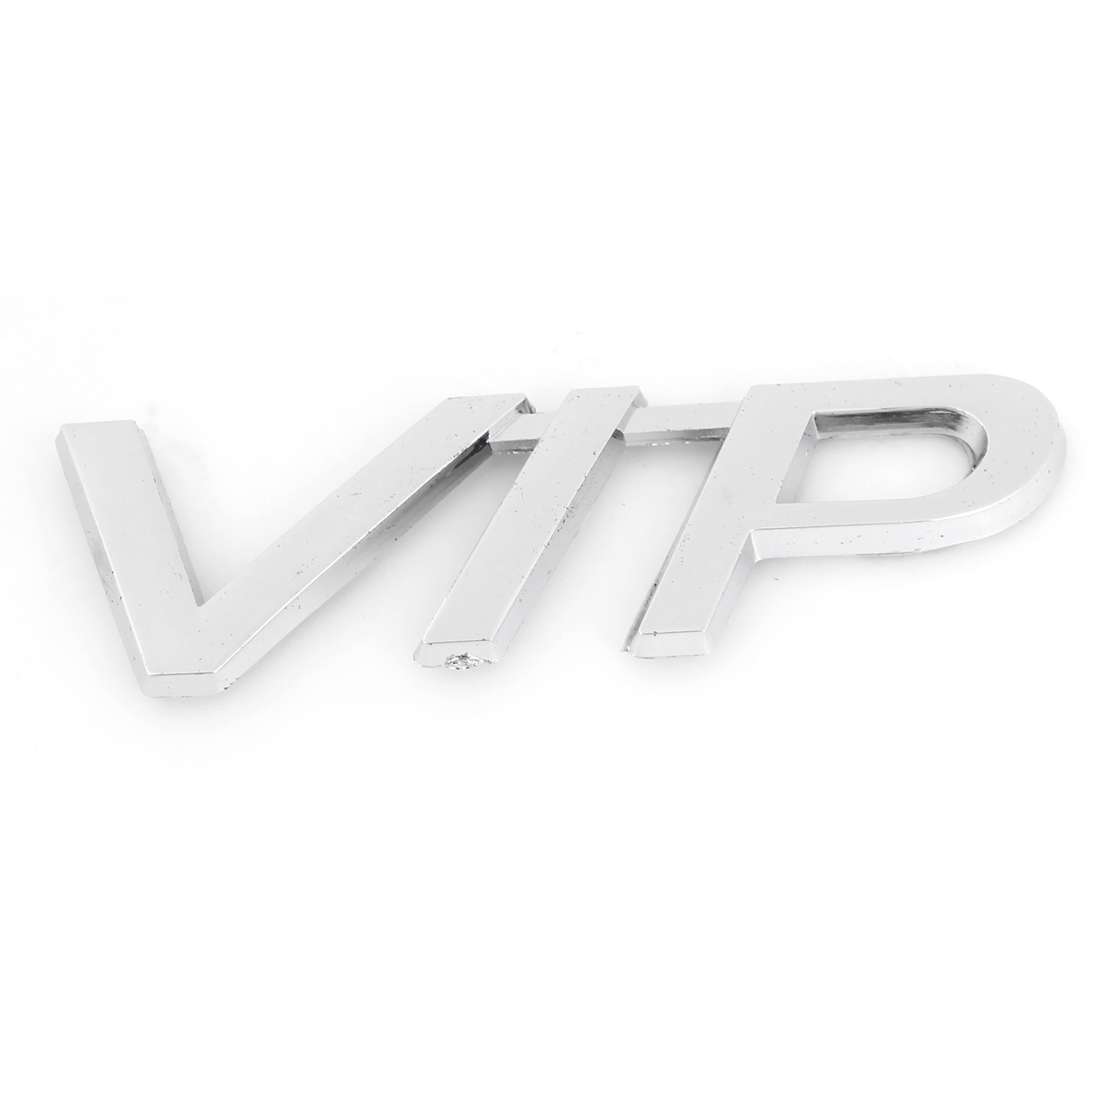 Auto Car Exterior Silver Tone Plastic VIP Shaped Sticker Badge Emblem Decoration